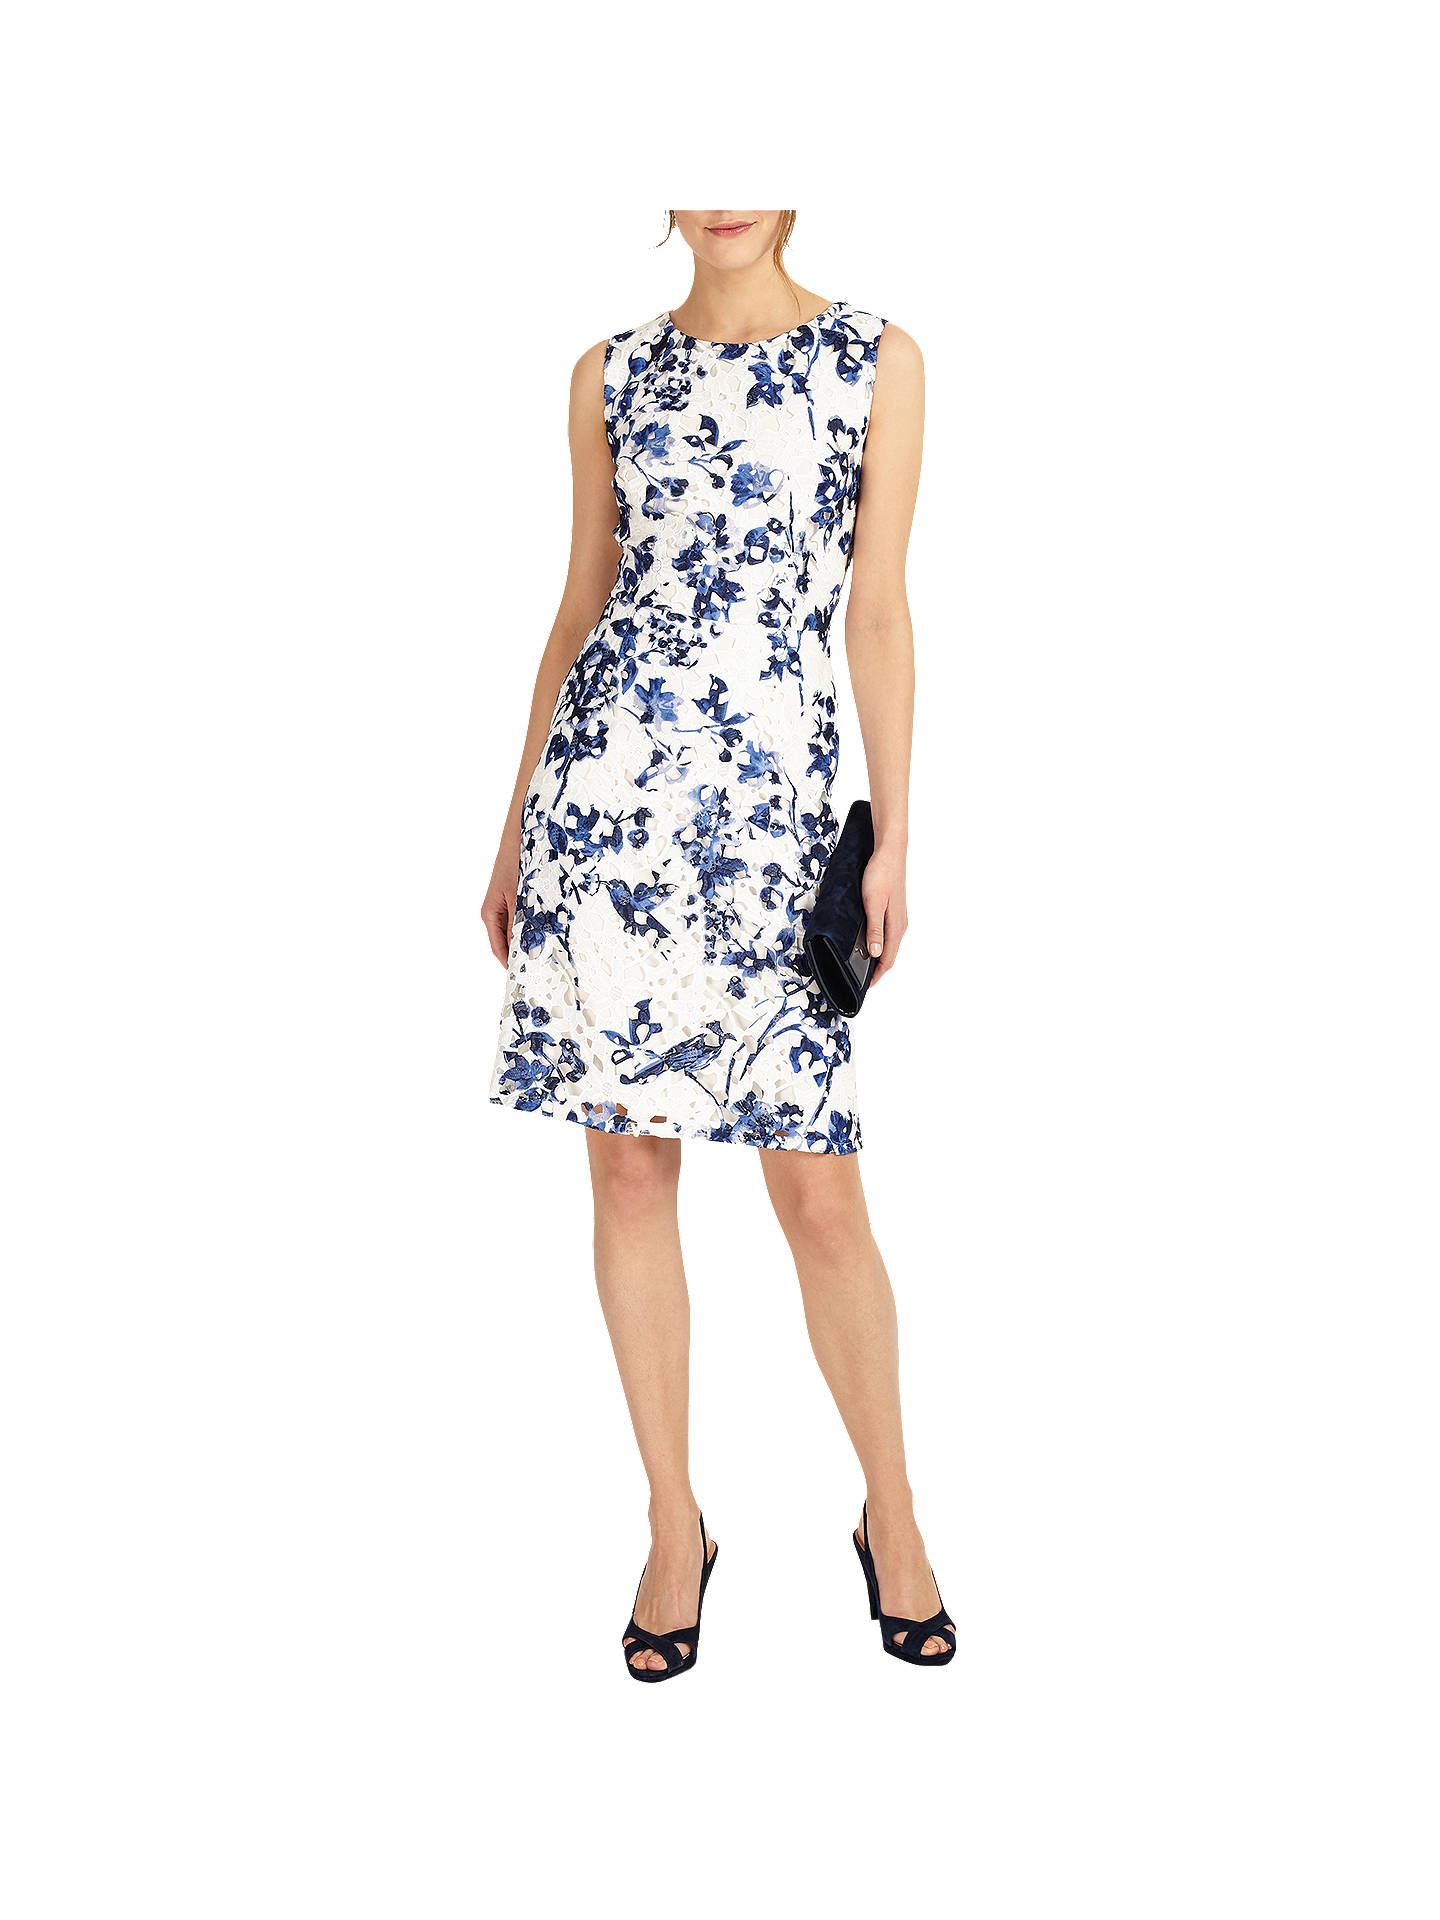 71535213650f Buy Phase Eight Lola Lace Floral Print Dress